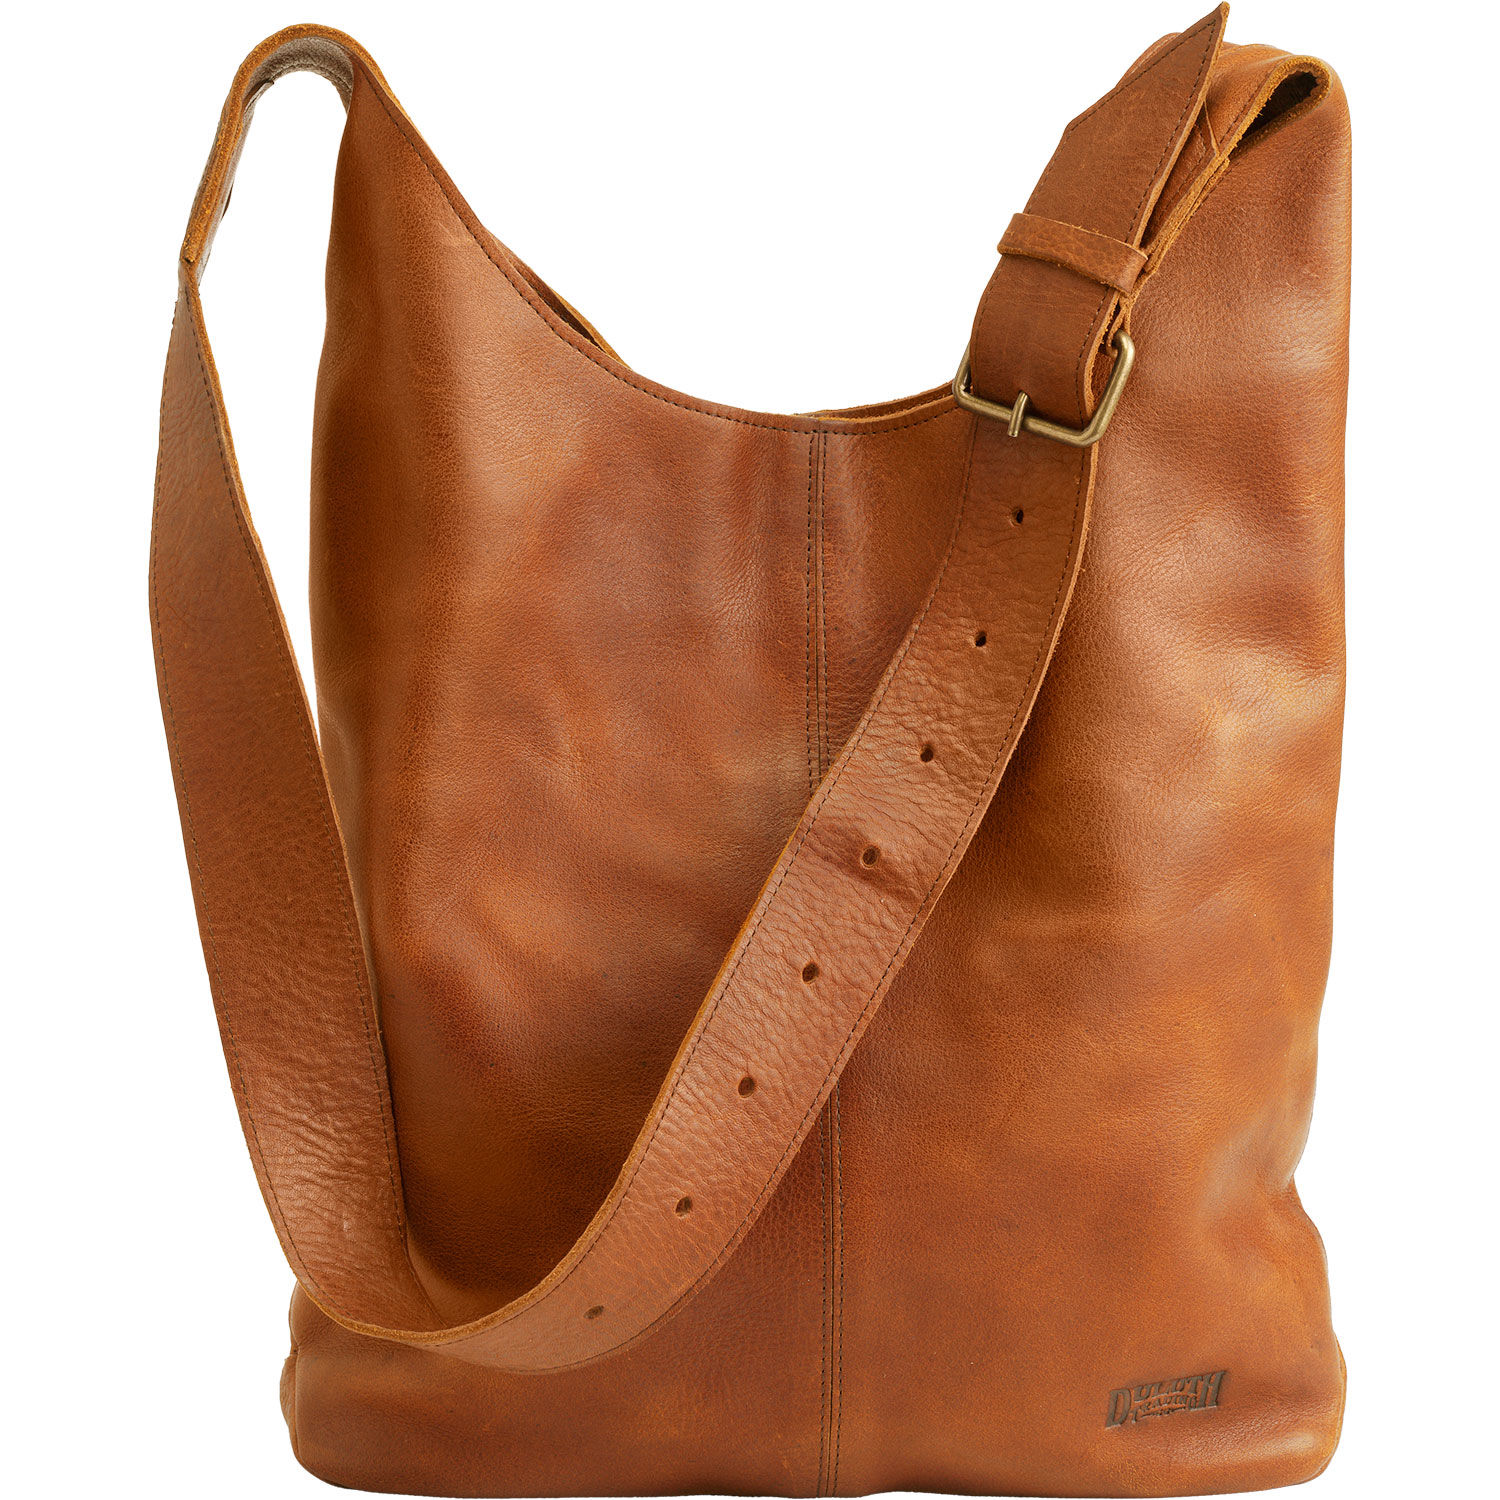 Women's Lifetime Leather Crossbody Bag | Duluth Trading Company